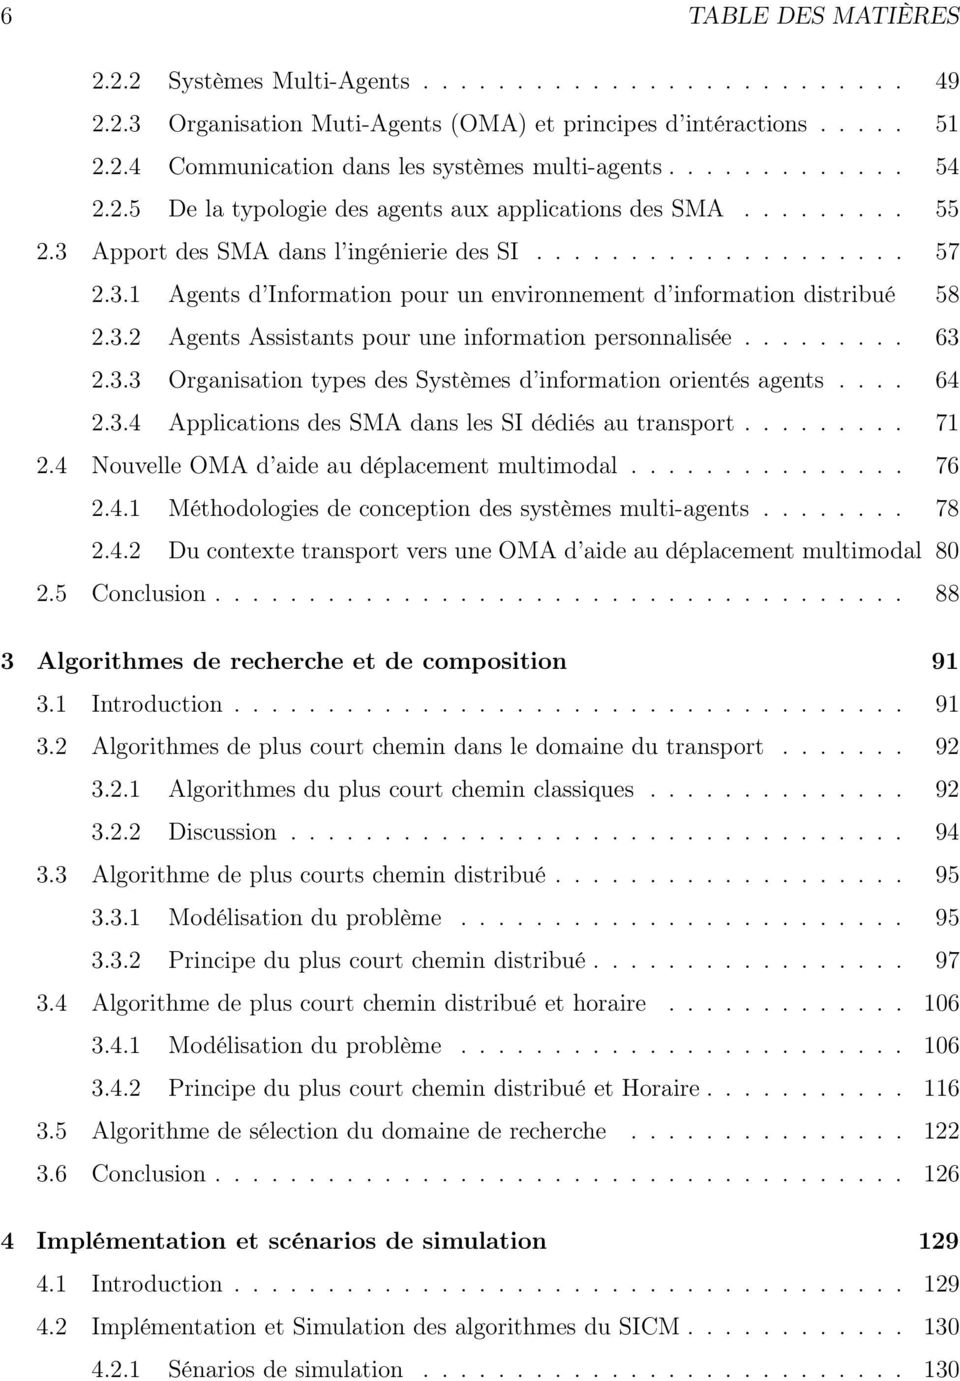 ... 64 2.3.4 ApplicationsdesSMAdanslesSIdédiésautransport... 71 2.4 NouvelleOMAd aideaudéplacementmultimodal... 76 2.4.1 Méthodologiesdeconceptiondessystèmesmulti-agents... 78 2.4.2 Du contexte transport vers une OMA d aide au déplacement multimodal 80 2.